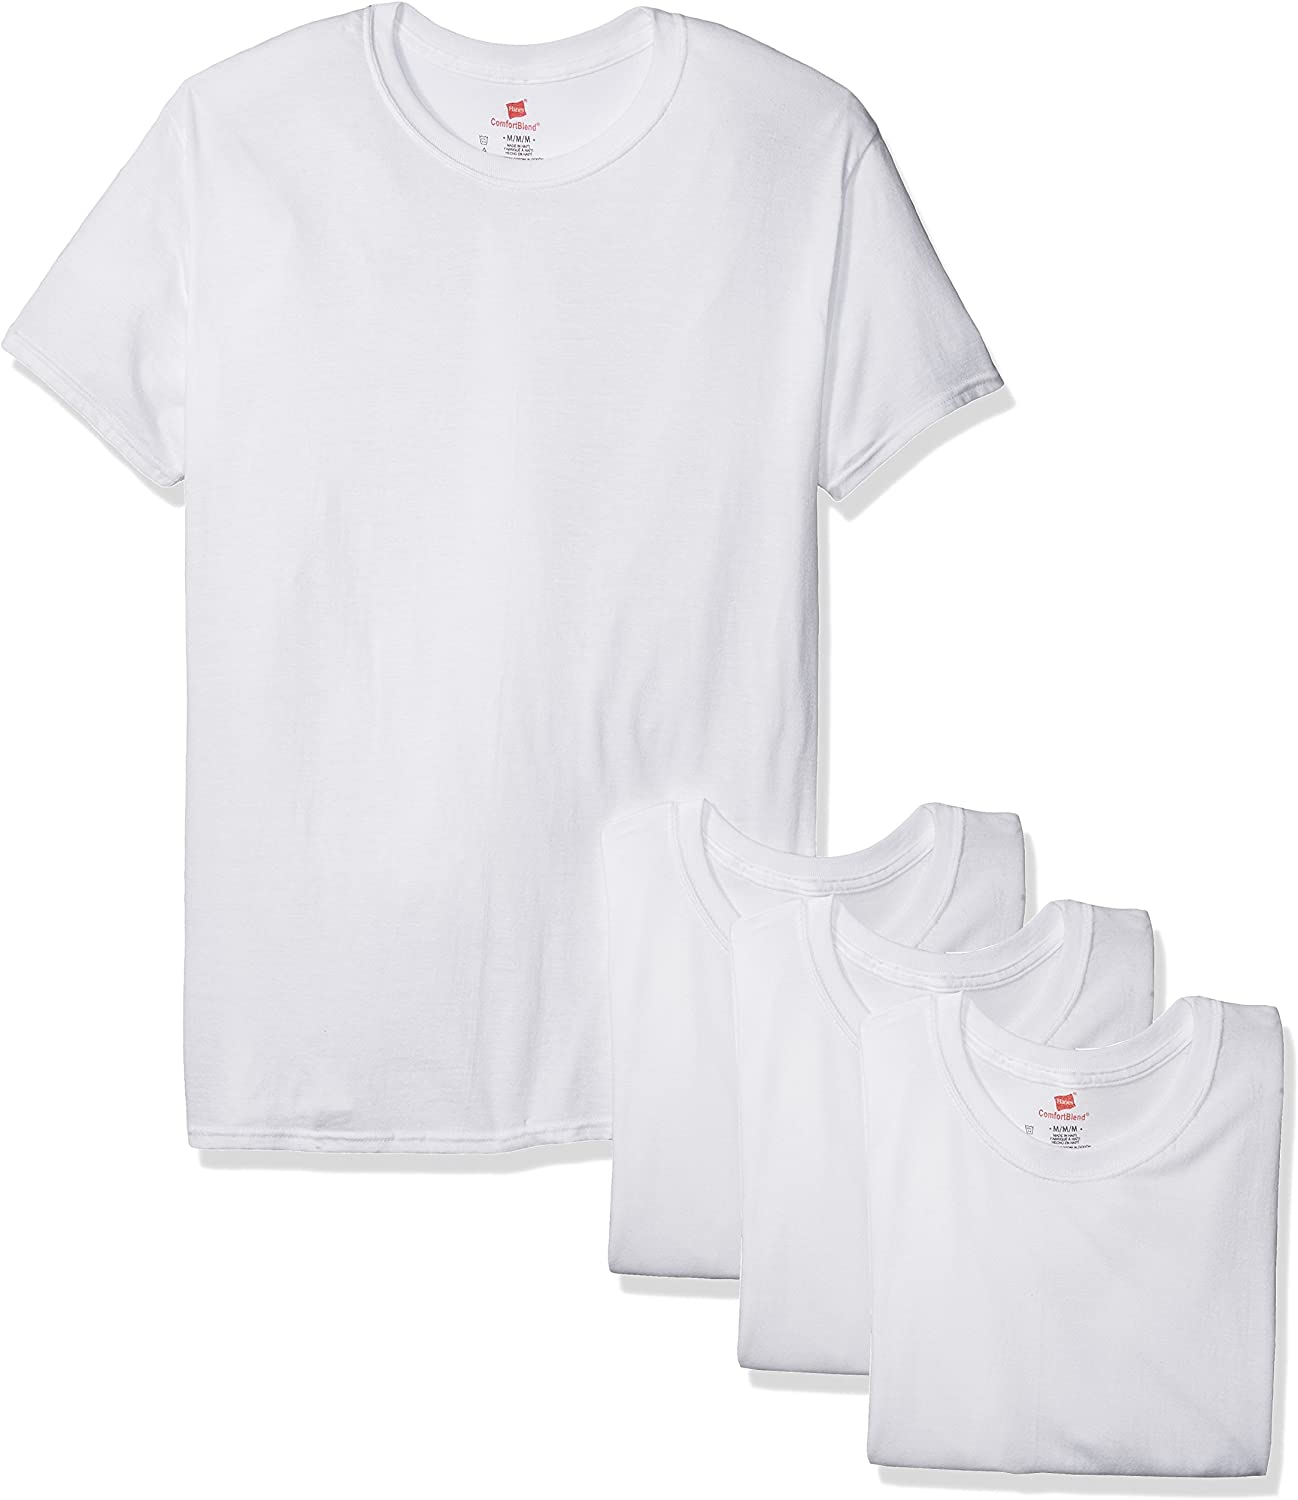 Max 48% OFF Hanes Men's 3-Pack Tampa Mall Comfortblend Freshiq Undershirt with Crewneck